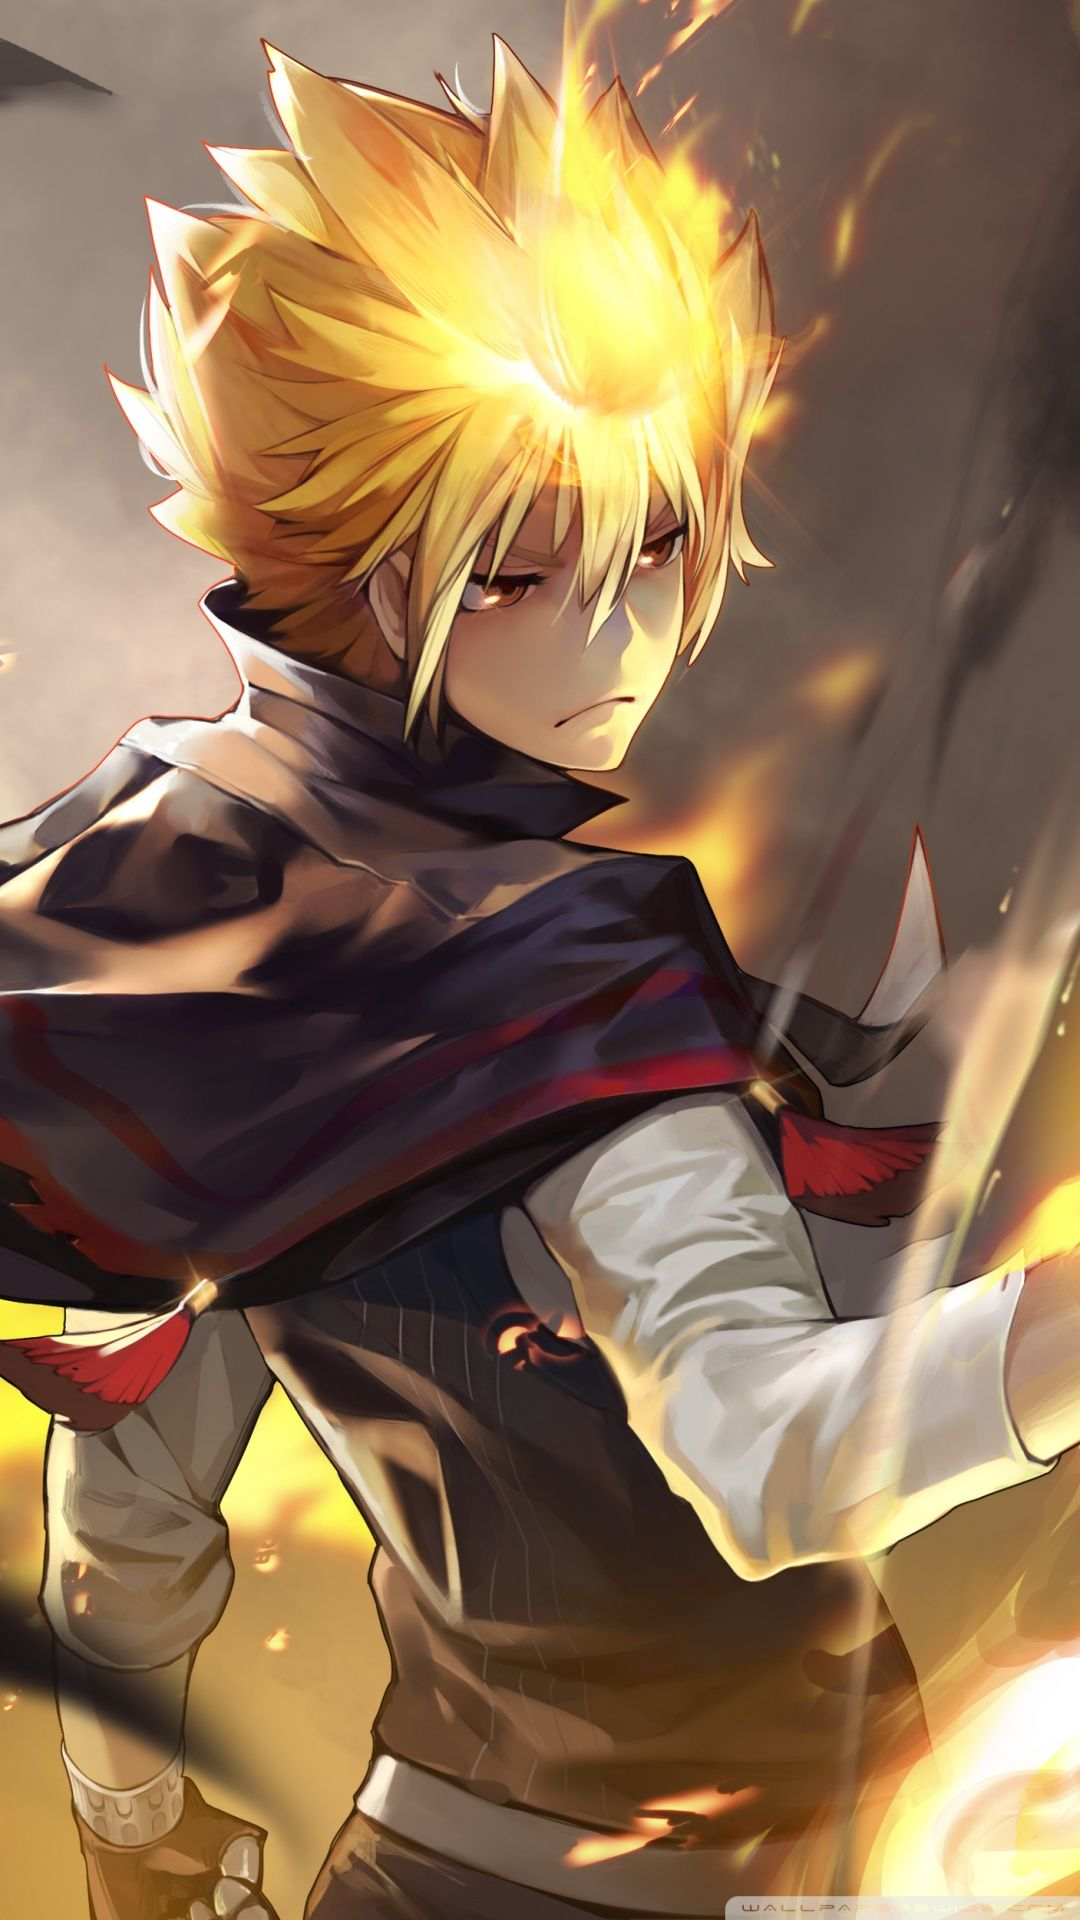 Anime Wallpaper 1080p » Hupages » Download Iphone